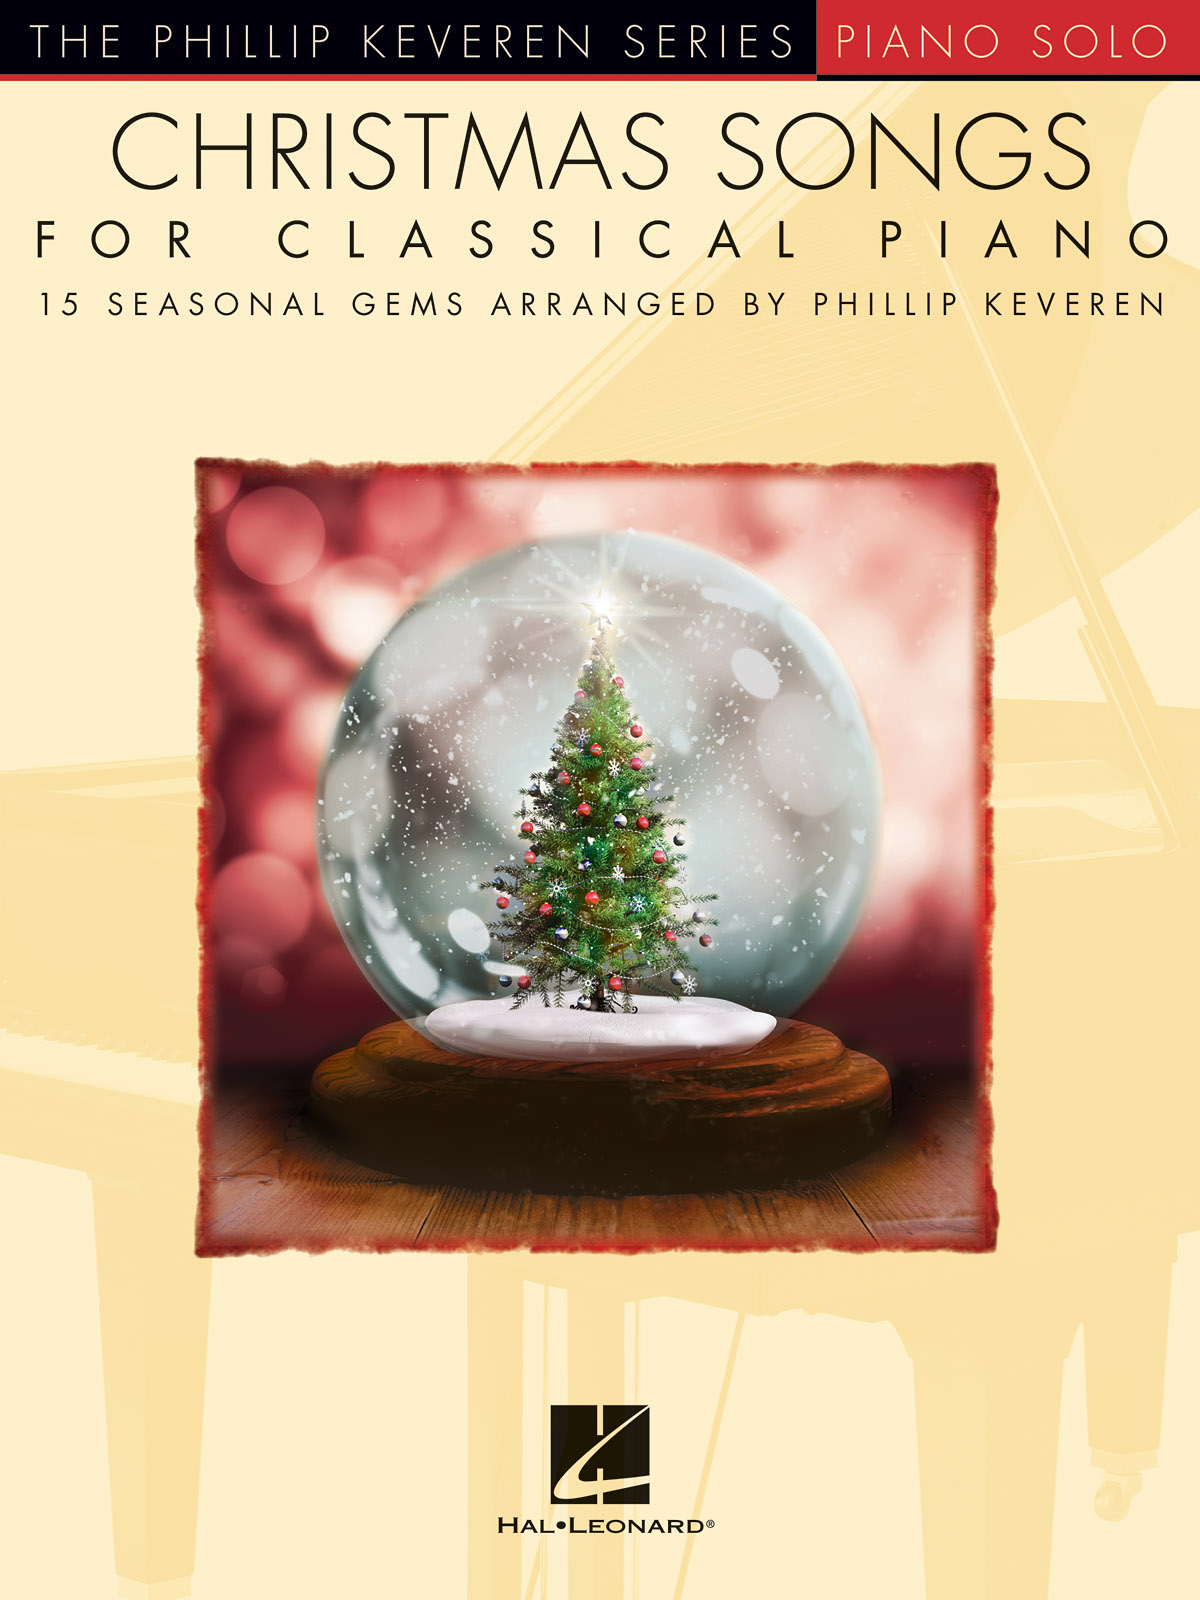 Christmas Songs For Classical Piano: Piano Solo: Album Songbook